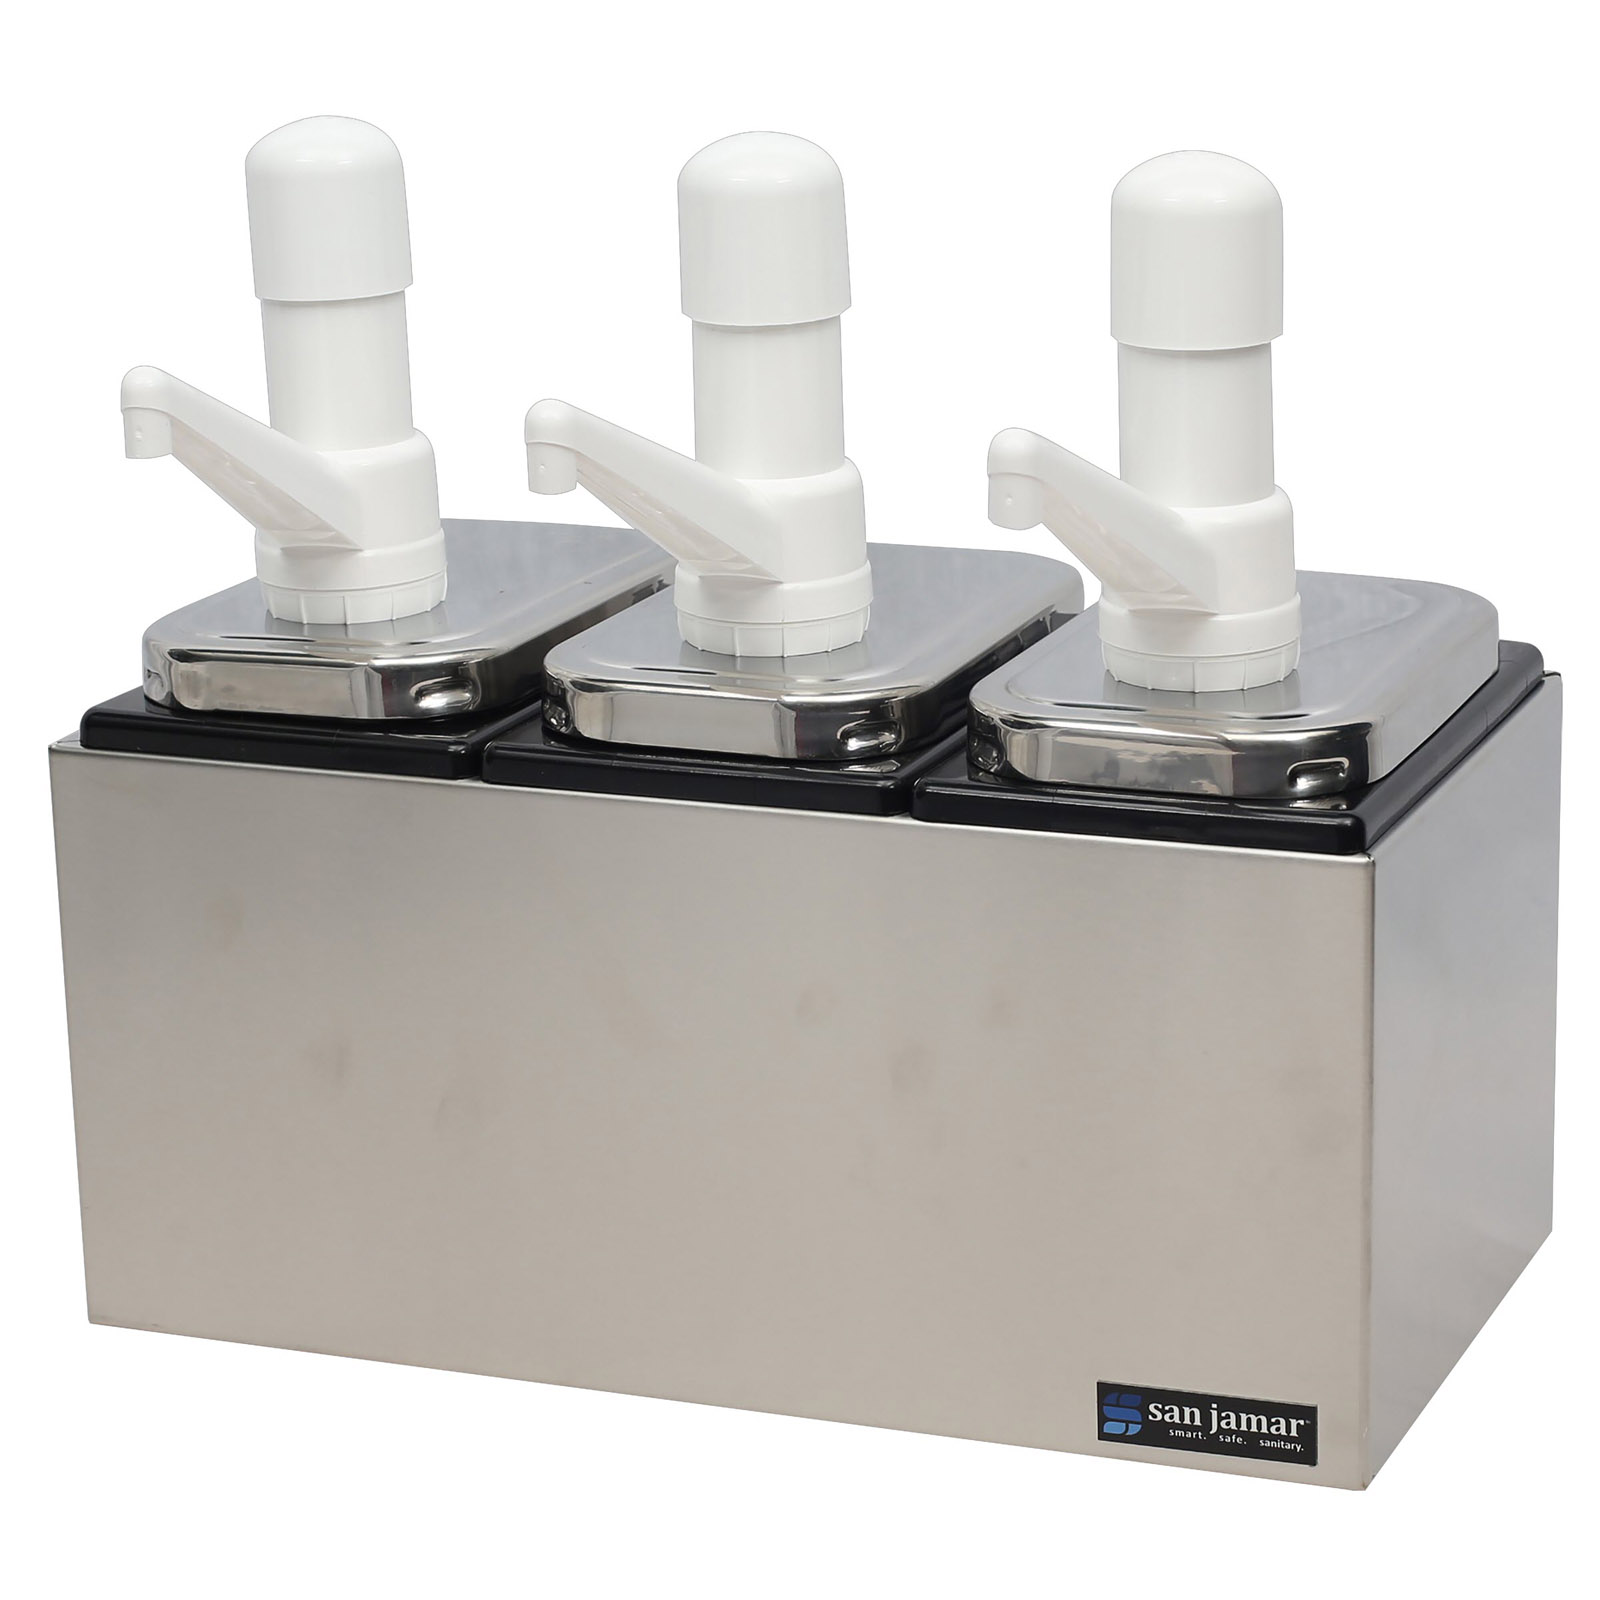 San Jamar P9713 condiment dispenser pump-style